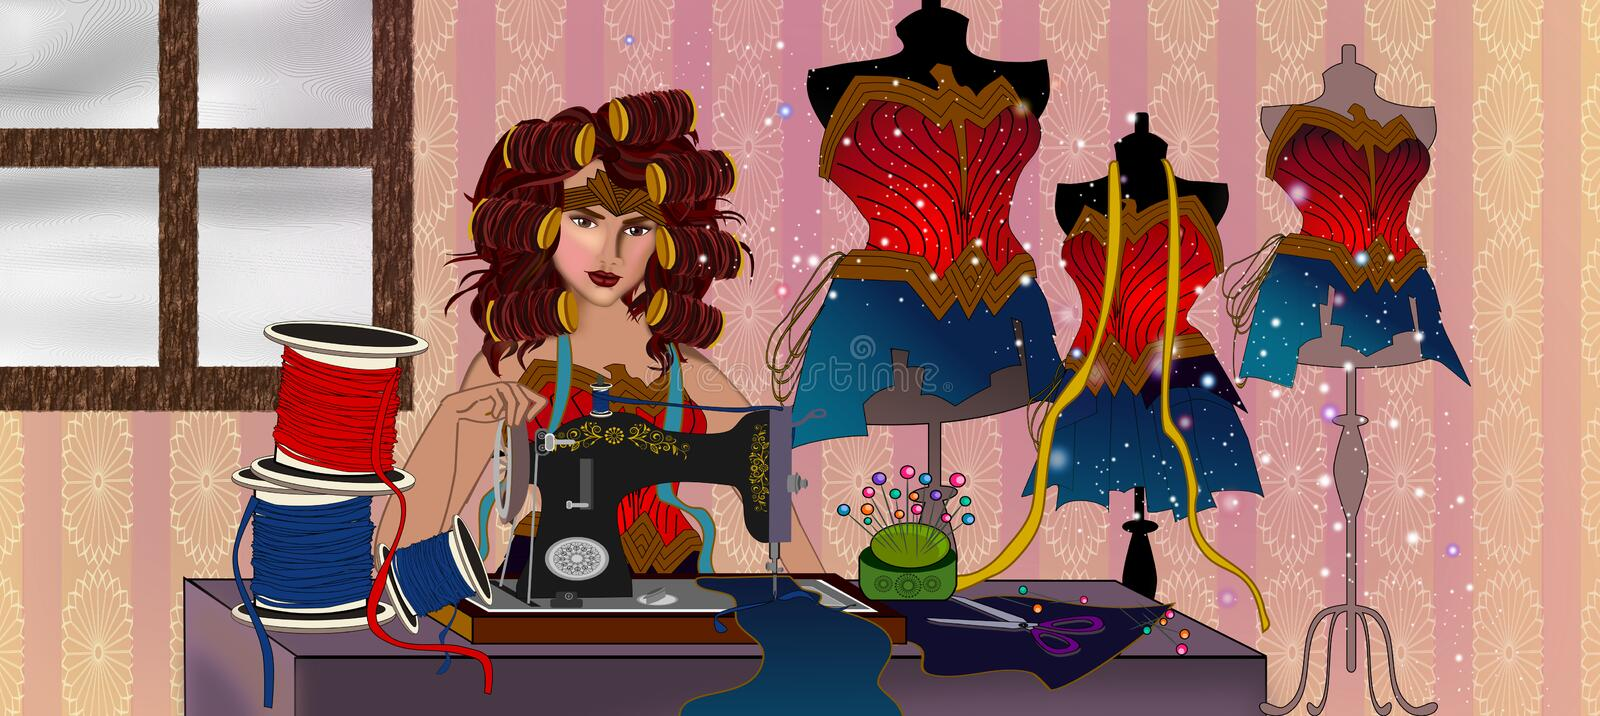 Just Stay home. Even wonder woman should Stay at home and relax illustration concept background royalty free illustration